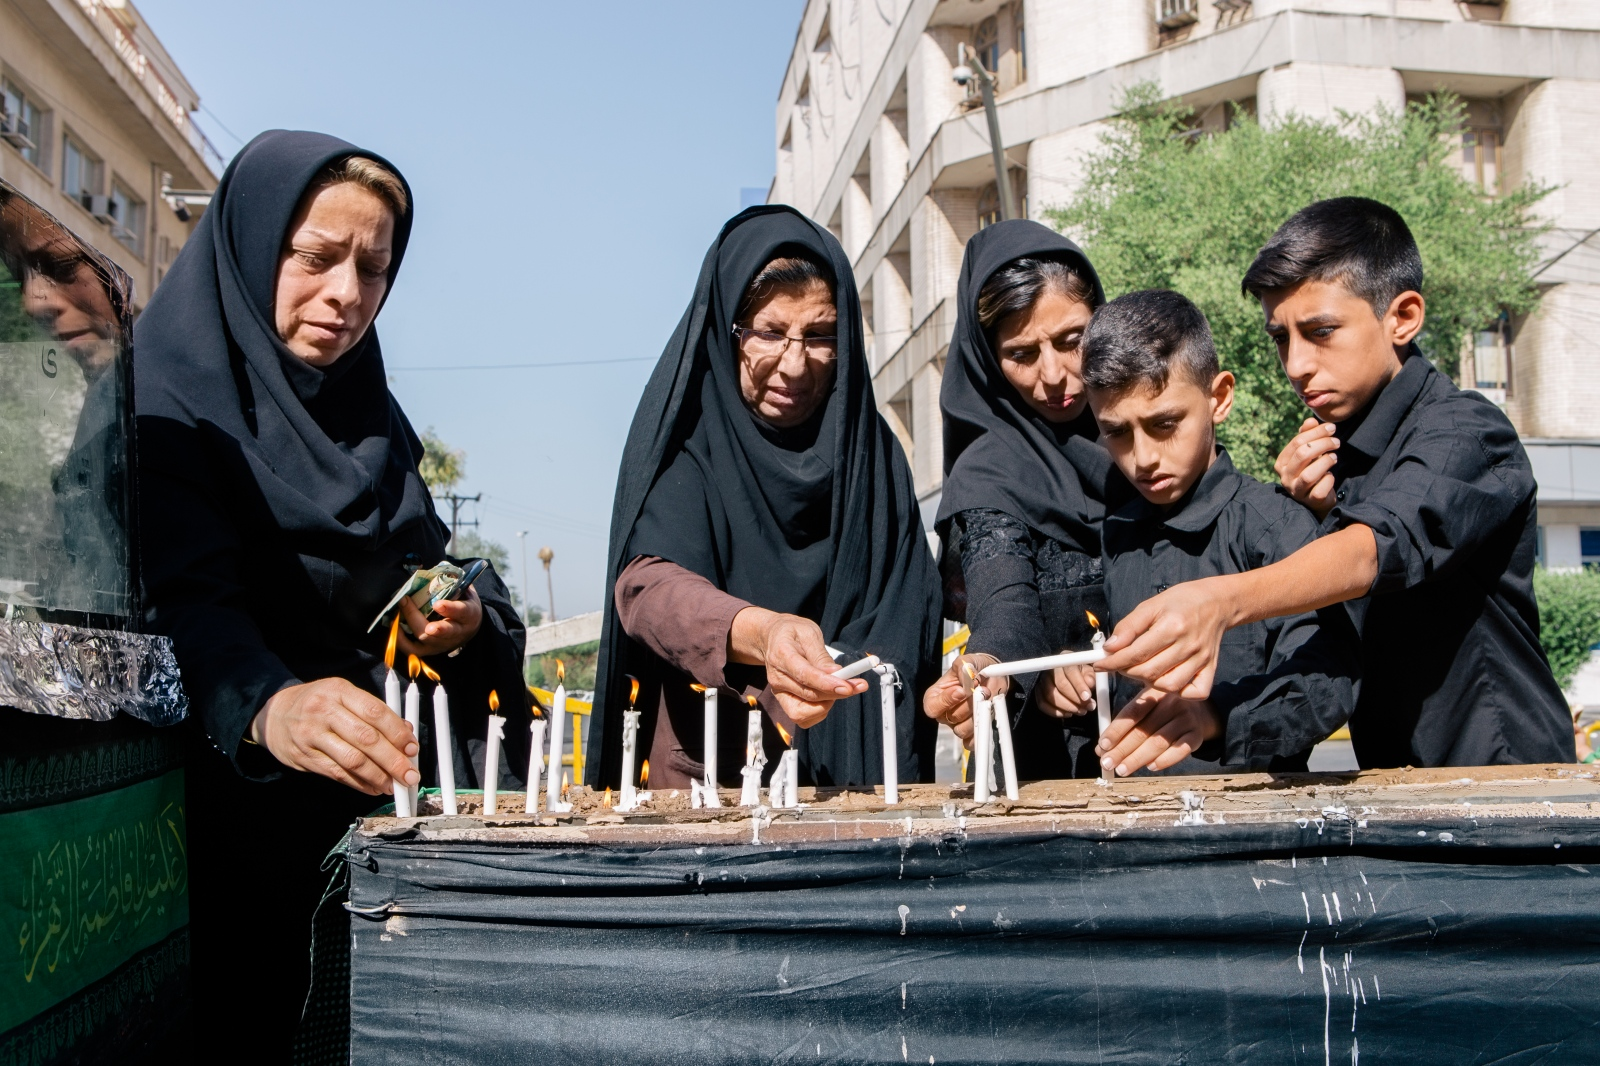 Muslims light candles in front of the Mandaean house On the day of Ashura (the tenth day of Muharram in the calendar. Commemorates the death of Hussain ibn Ali). To respect Muslims, Mandaean refuse to go out with white clothing. Ahvaz, Iran.2016.